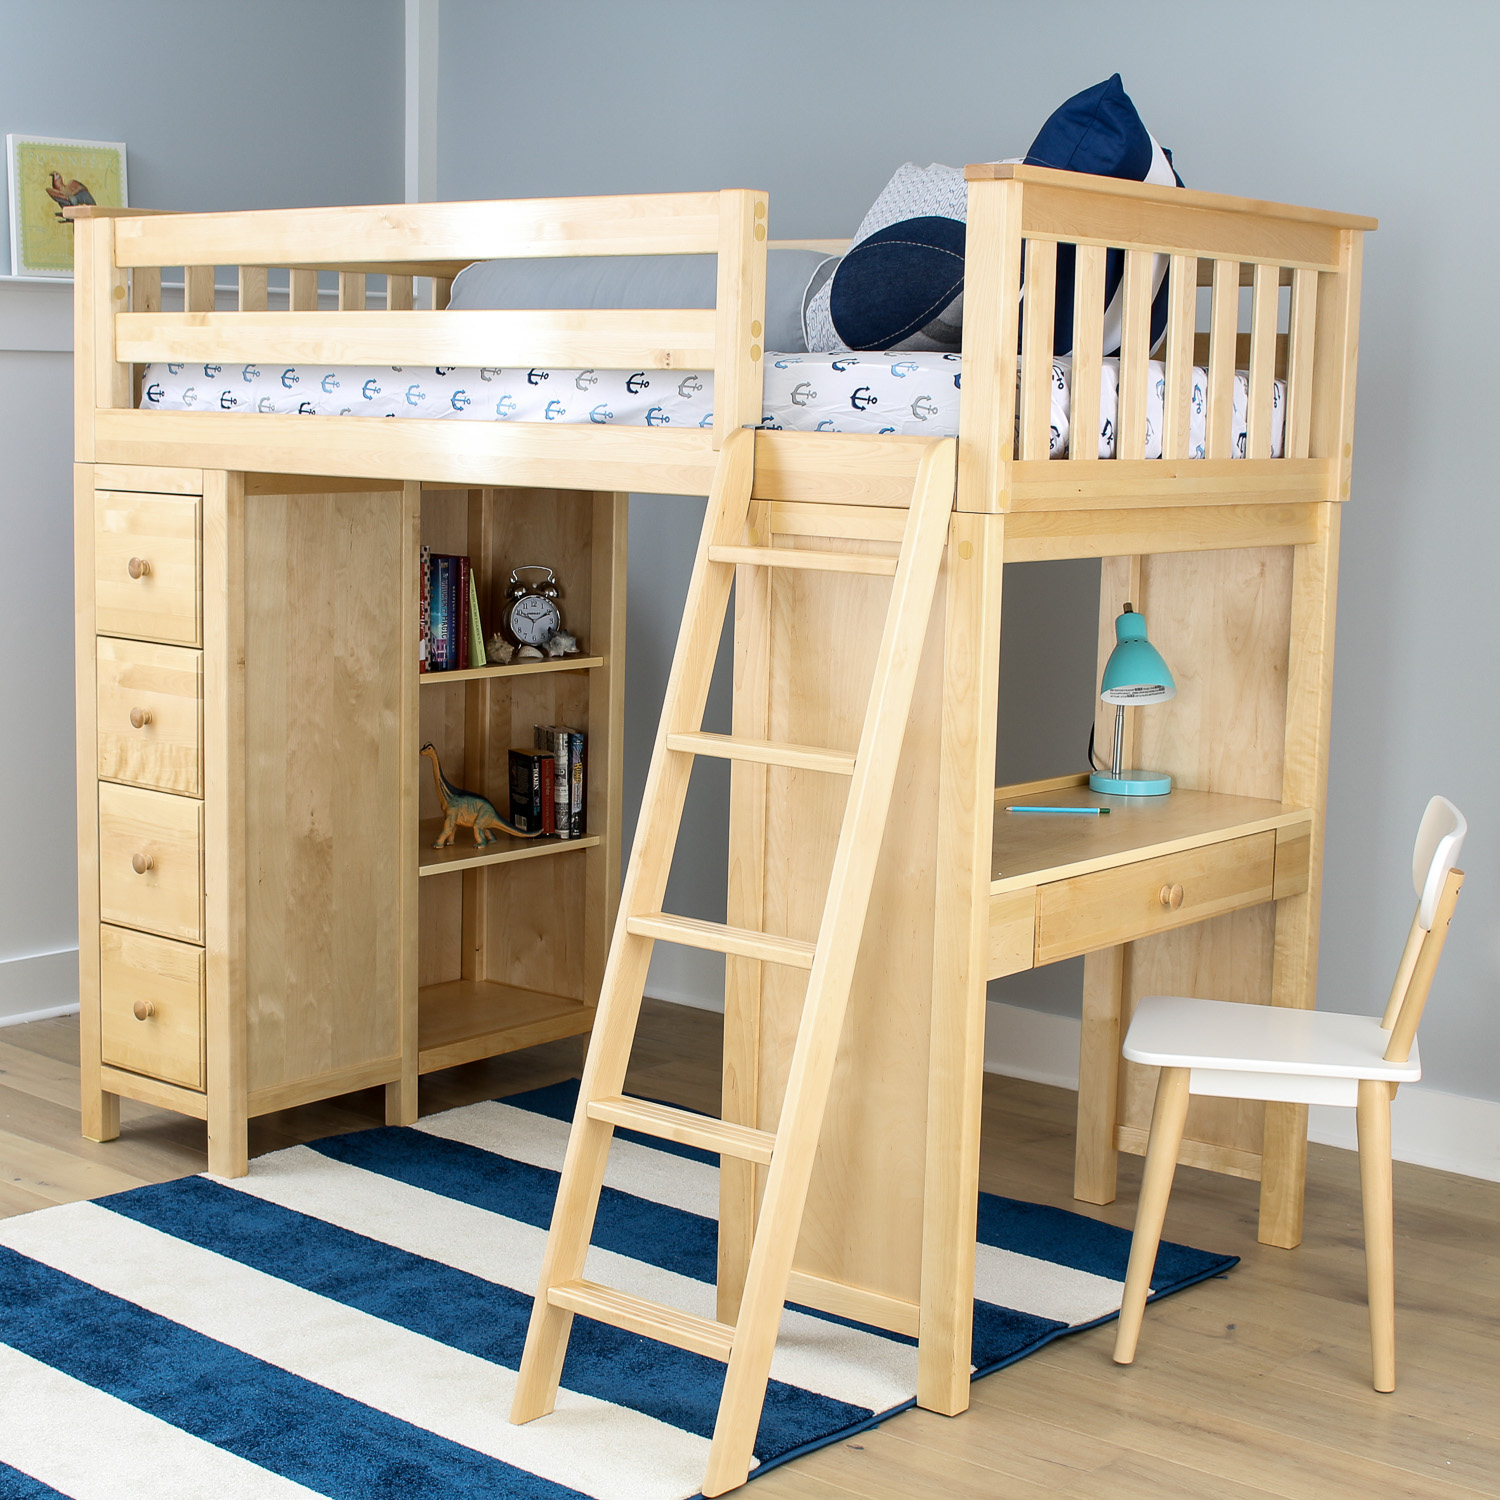 All In One Loft Beds Image Gallery